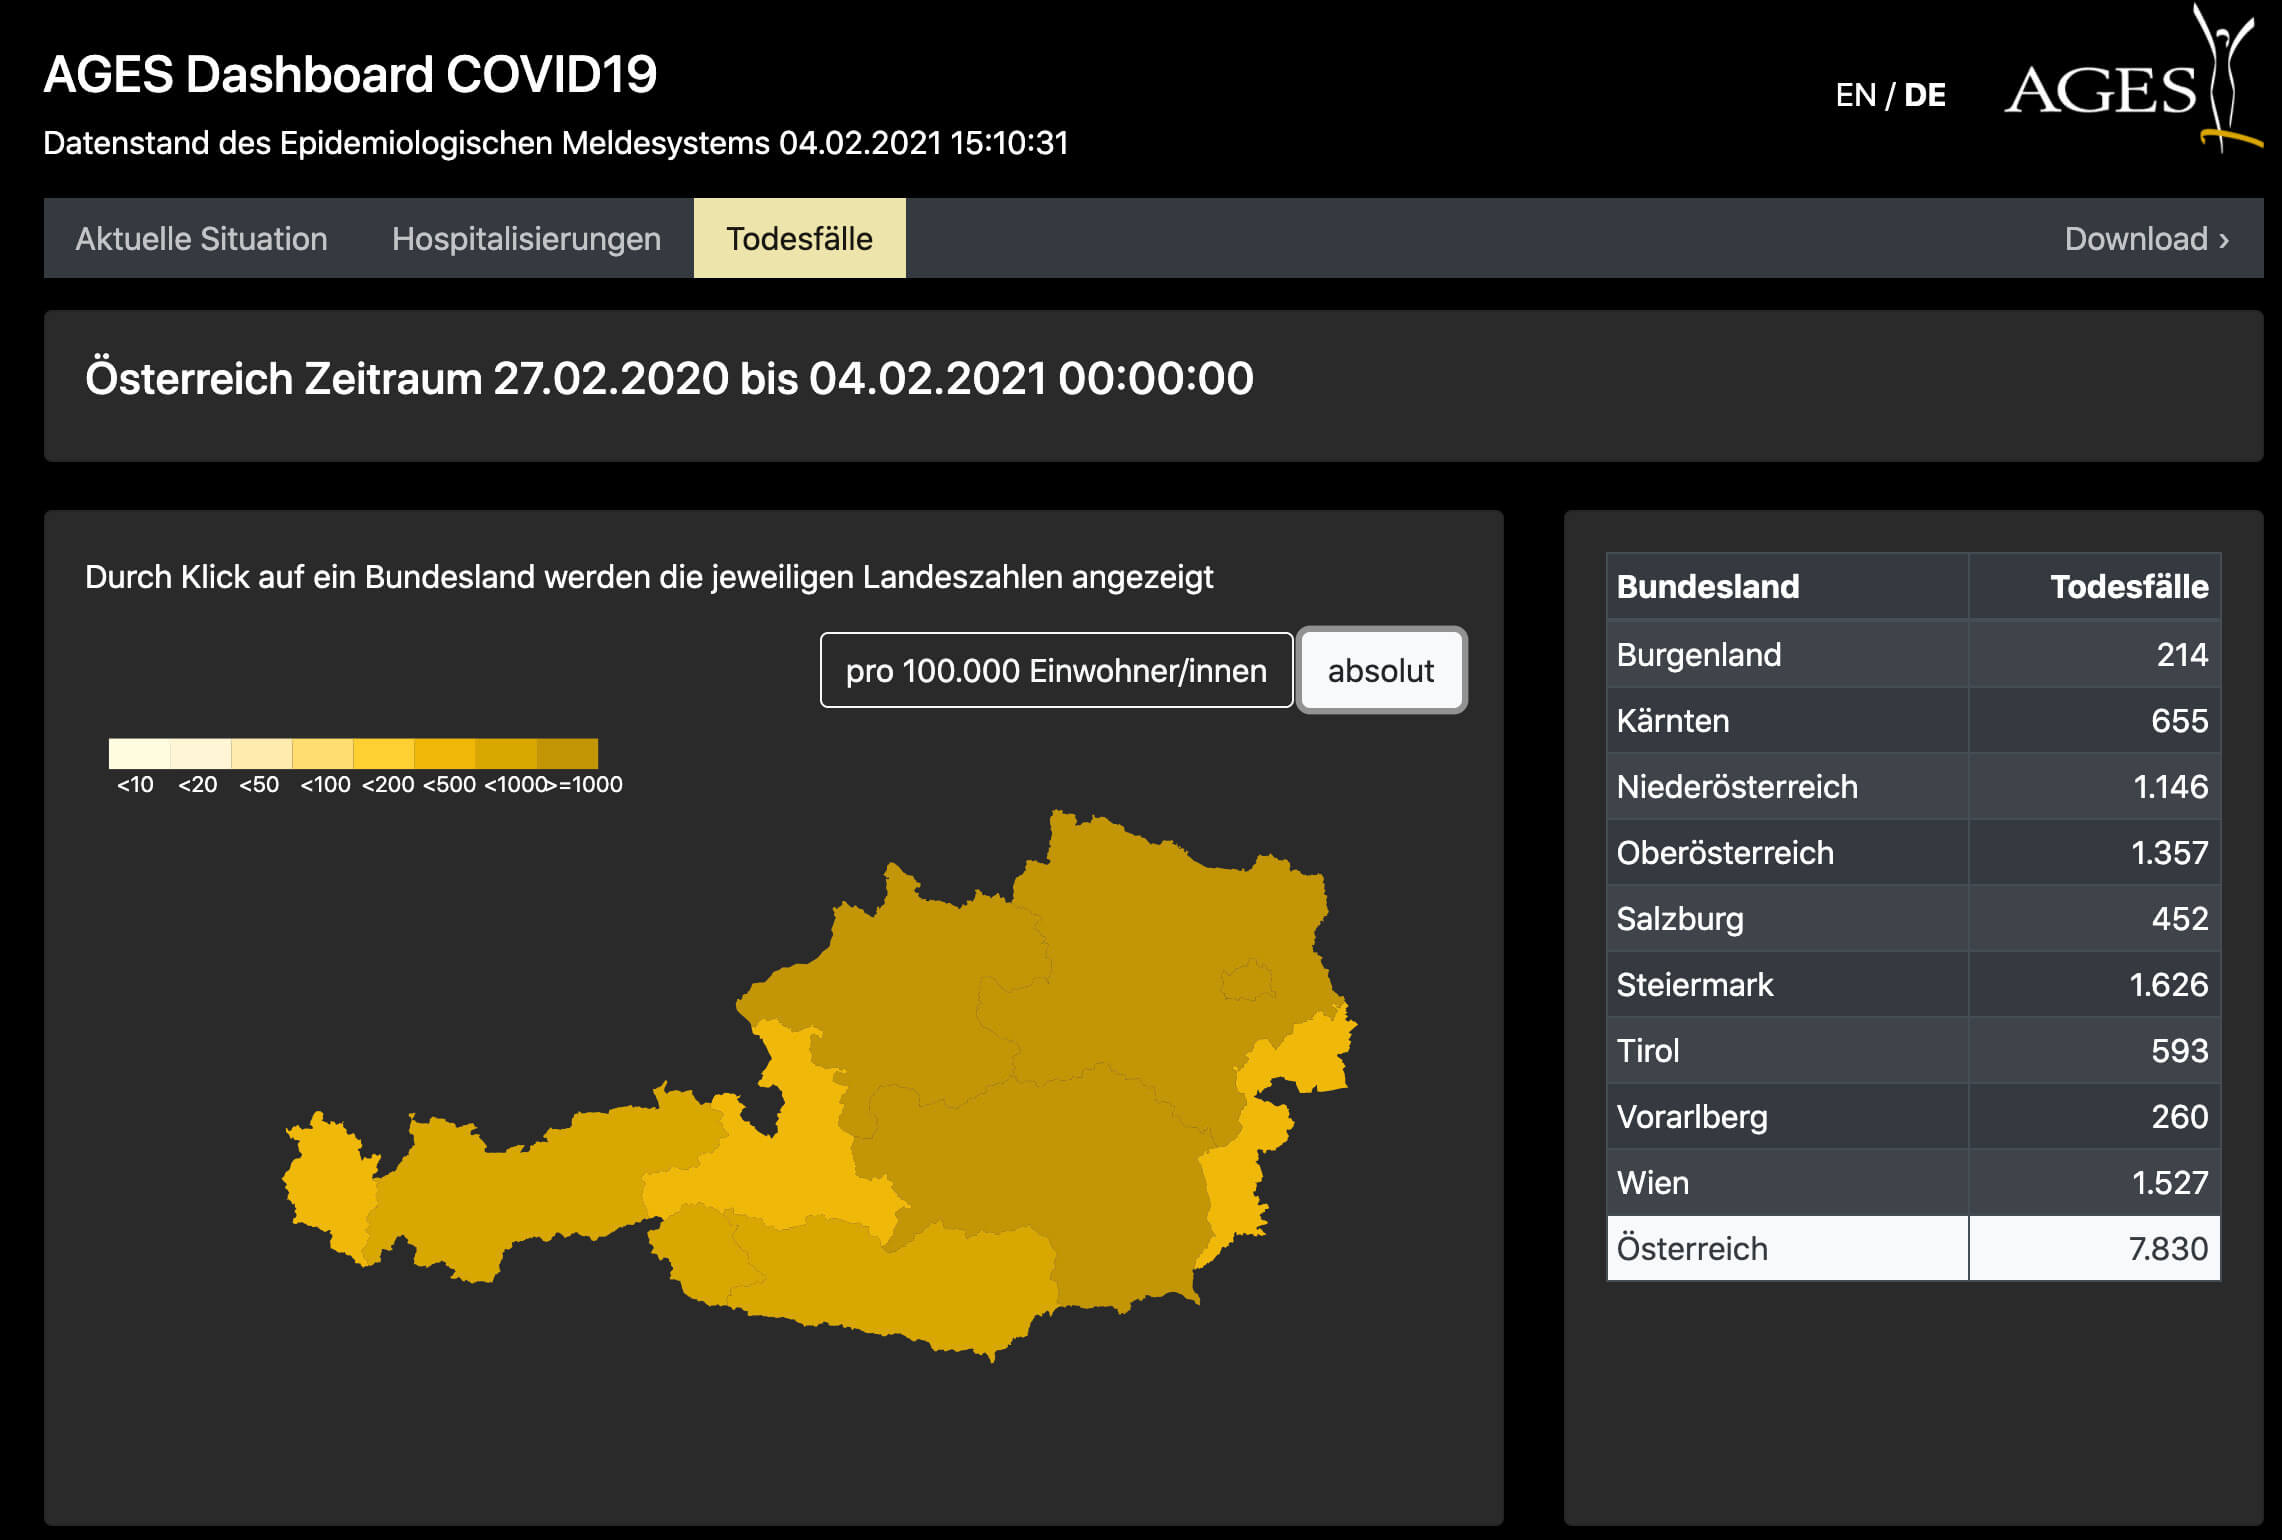 Covid Dashboard der AGES 4.2.2021 Tote Gesamt